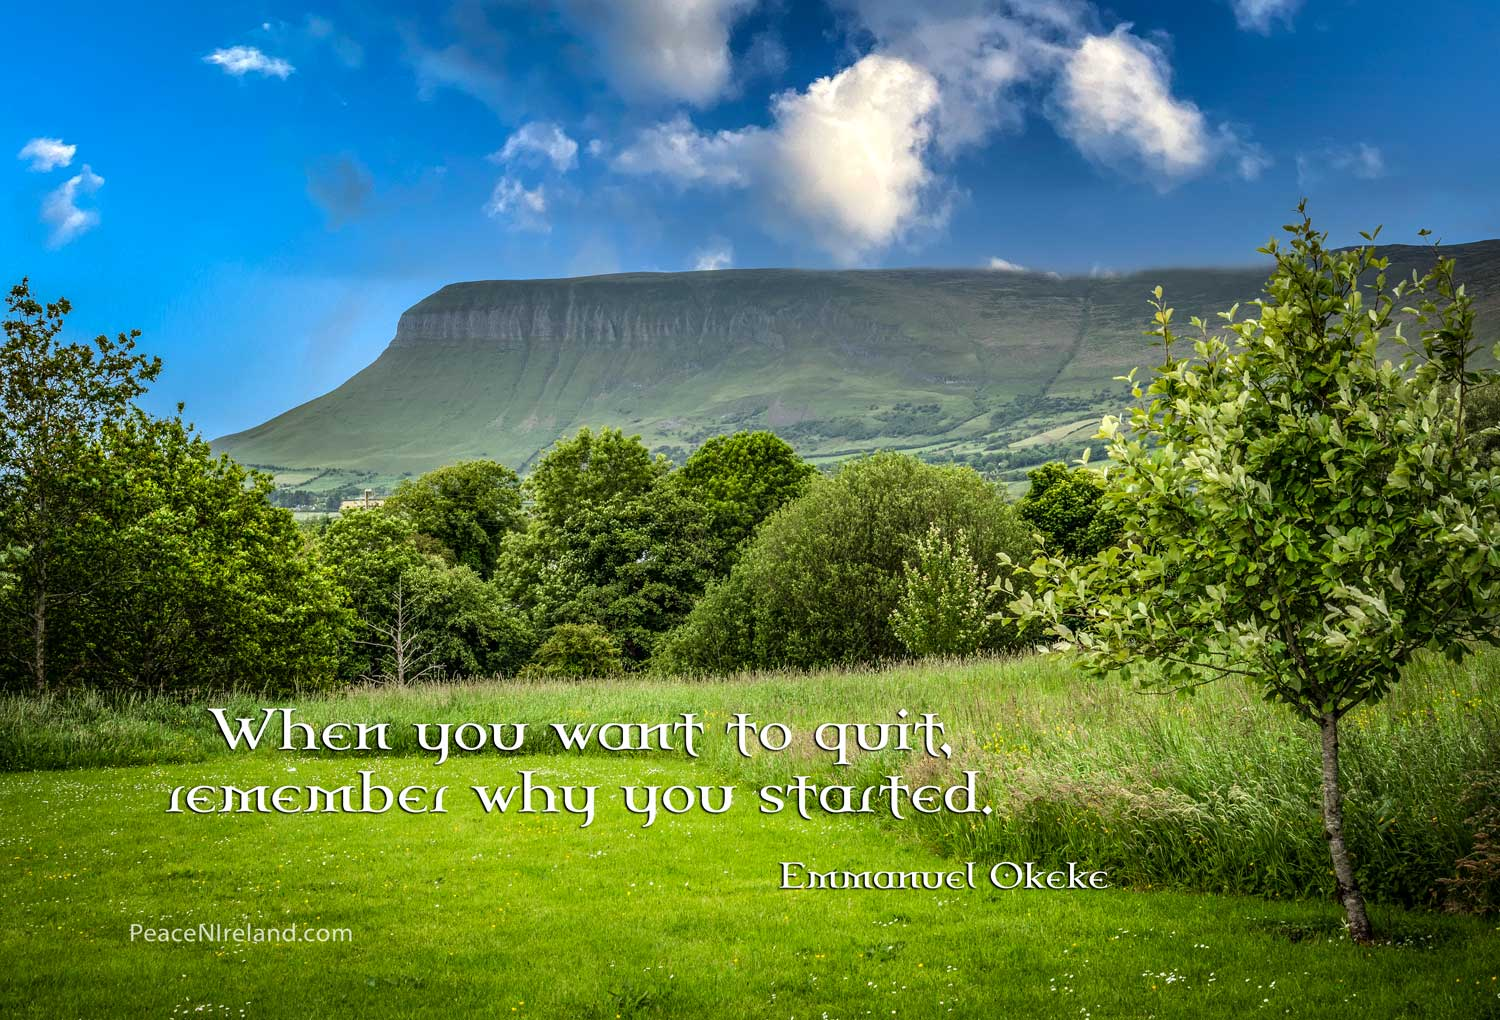 Ben Bulben mountain, from the burial place of W.B. Yeats, at Drumcliffe, County Sligo